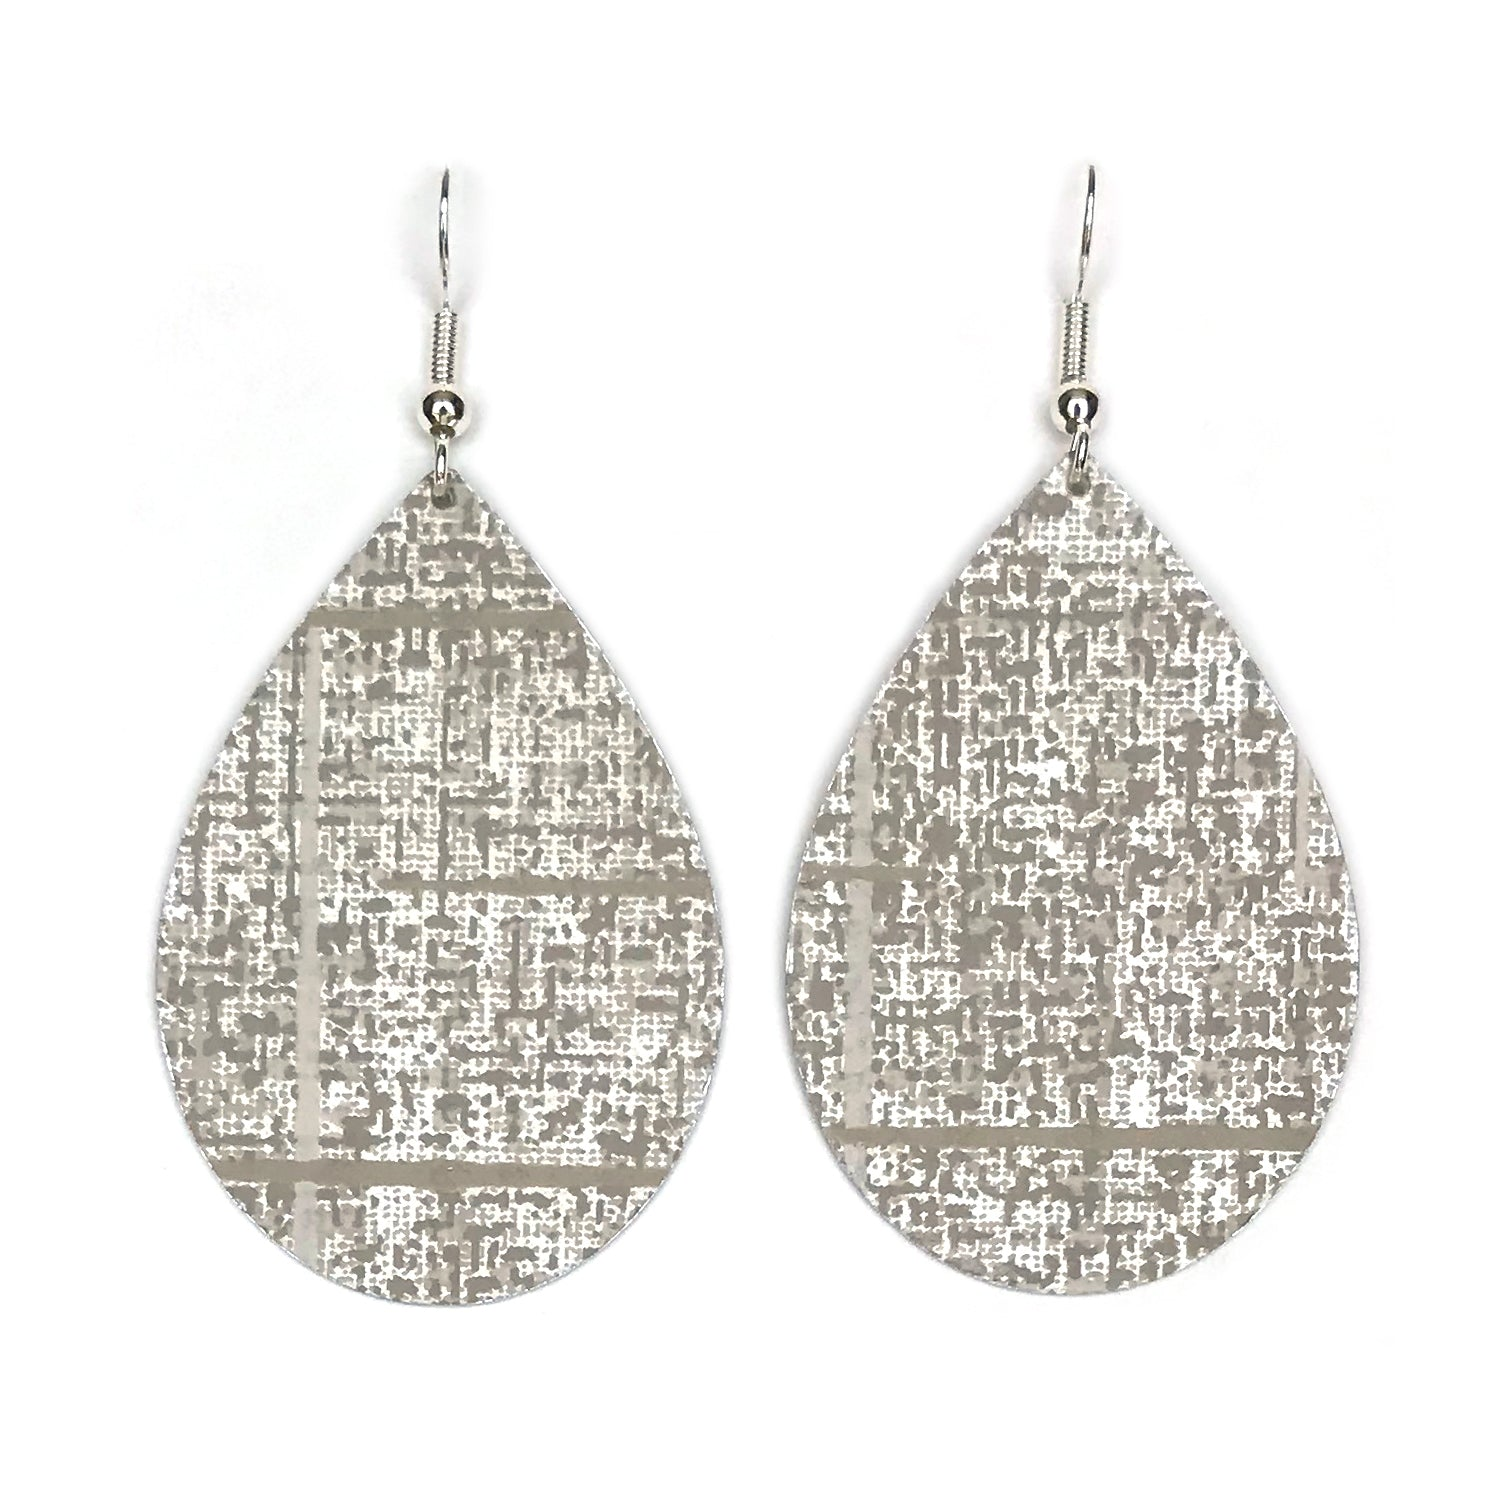 Gracie Nicole Handmade Jewelry. If you want a not-so-ordinary neutral, you'll love these teardrop earrings made from this pretty grey wallpaper by York. It's has a subtle, silvery metallic shimmer with flecks and lines of gray white. It's a sophisticated pattern that really elevates the look of this fun teardrop shape.